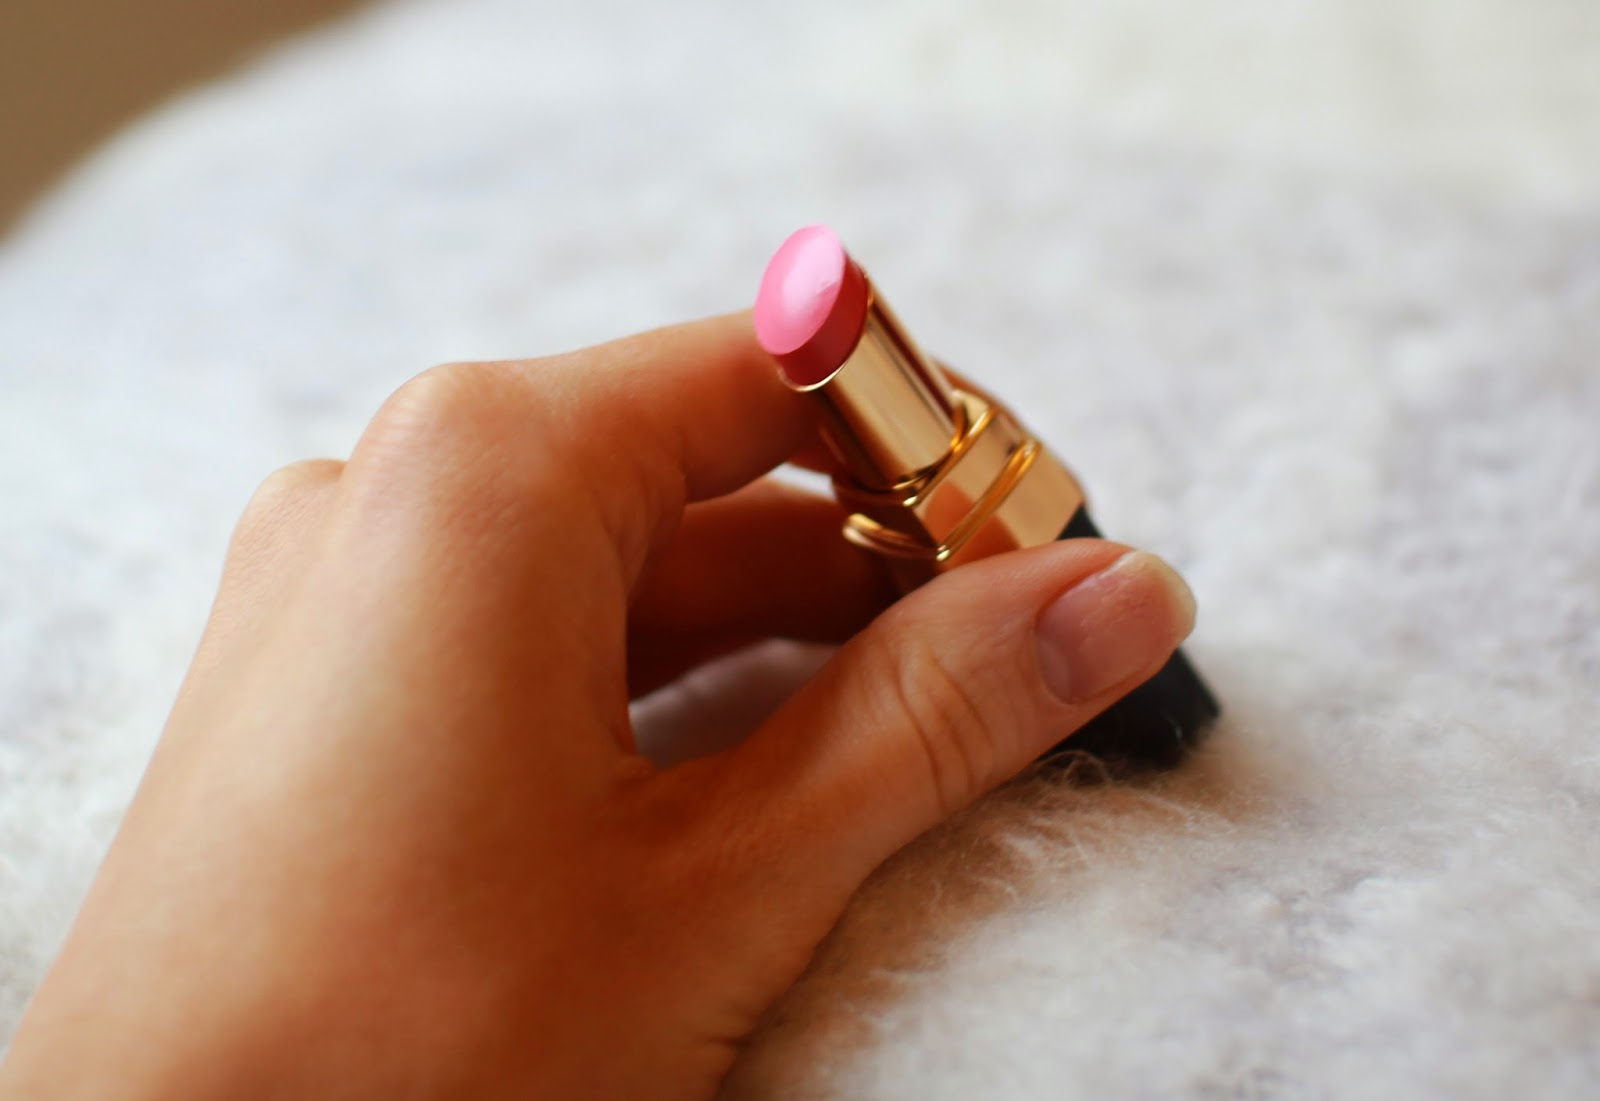 Chanel Rouge Coco Shine in Romance